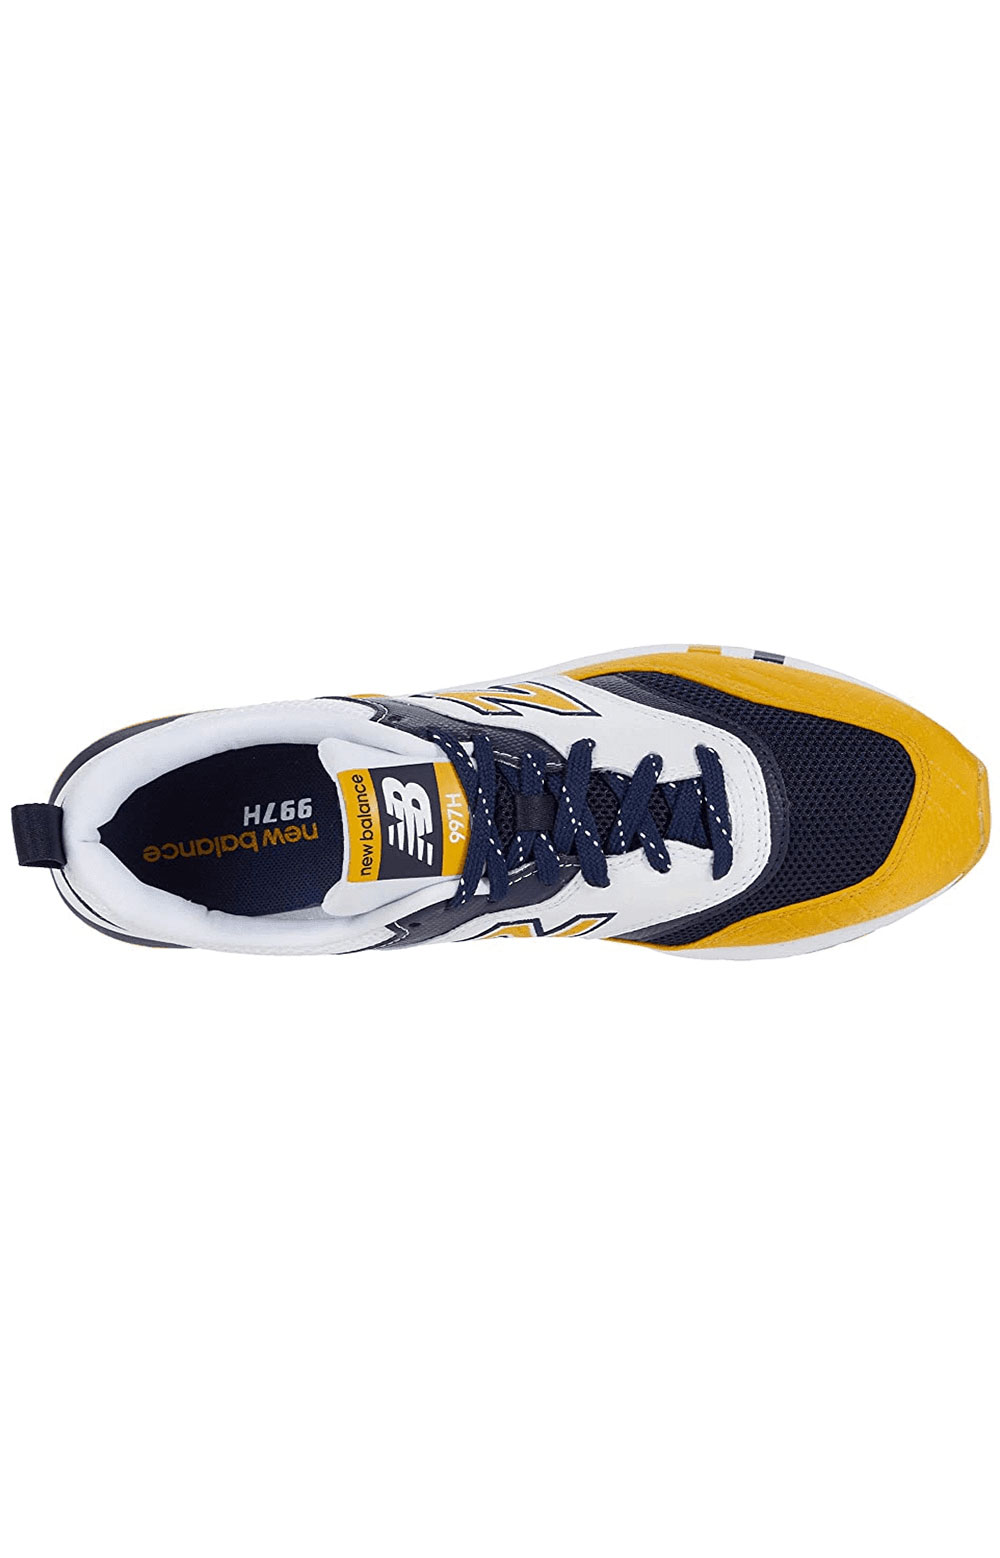 (CM997HBY) 997H Shoes - Yellow/Navy 3